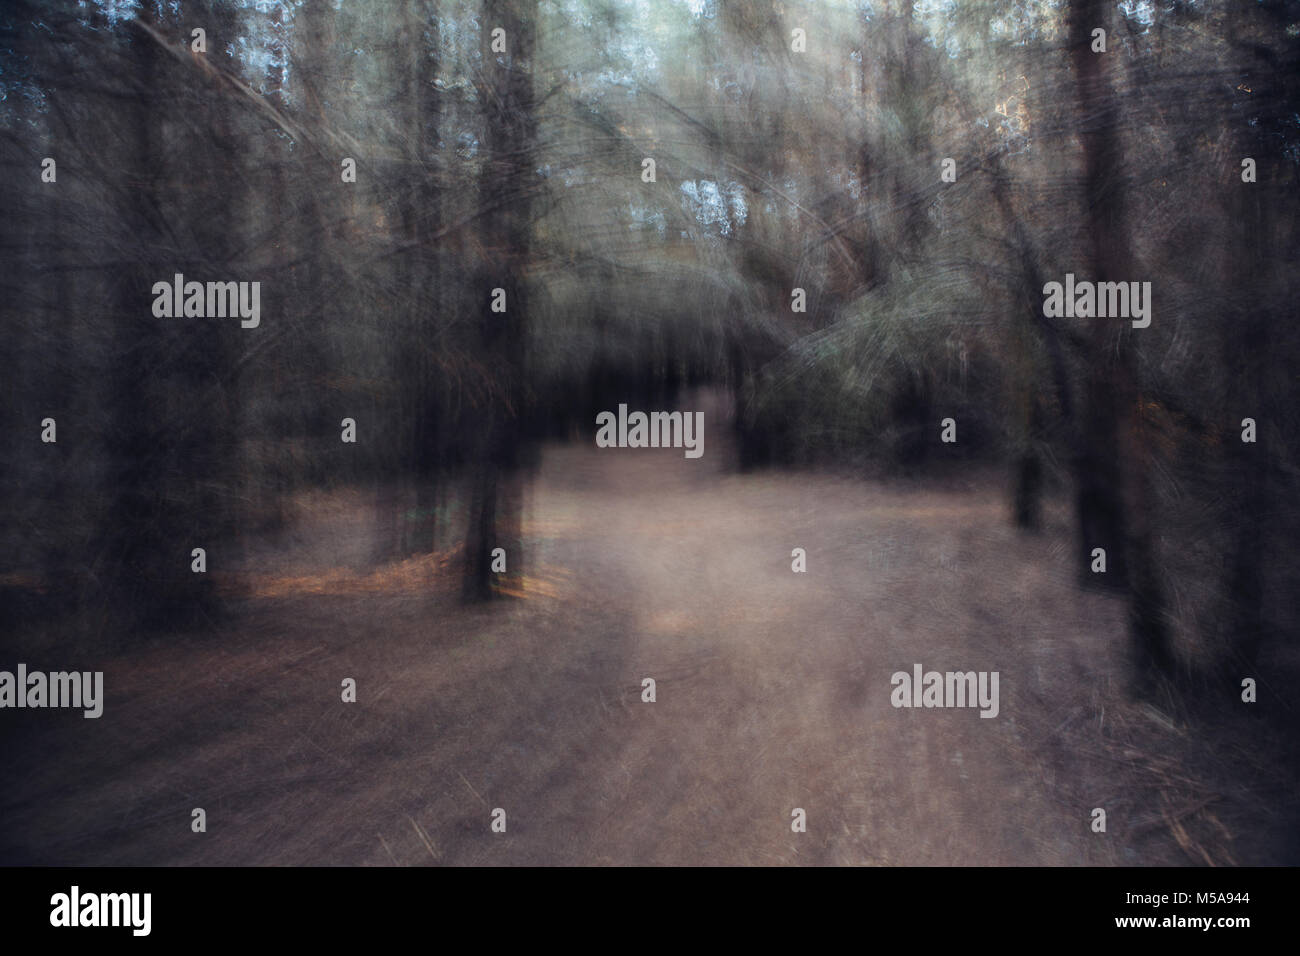 Blurred motion, path leading through forest at dawn. - Stock Image